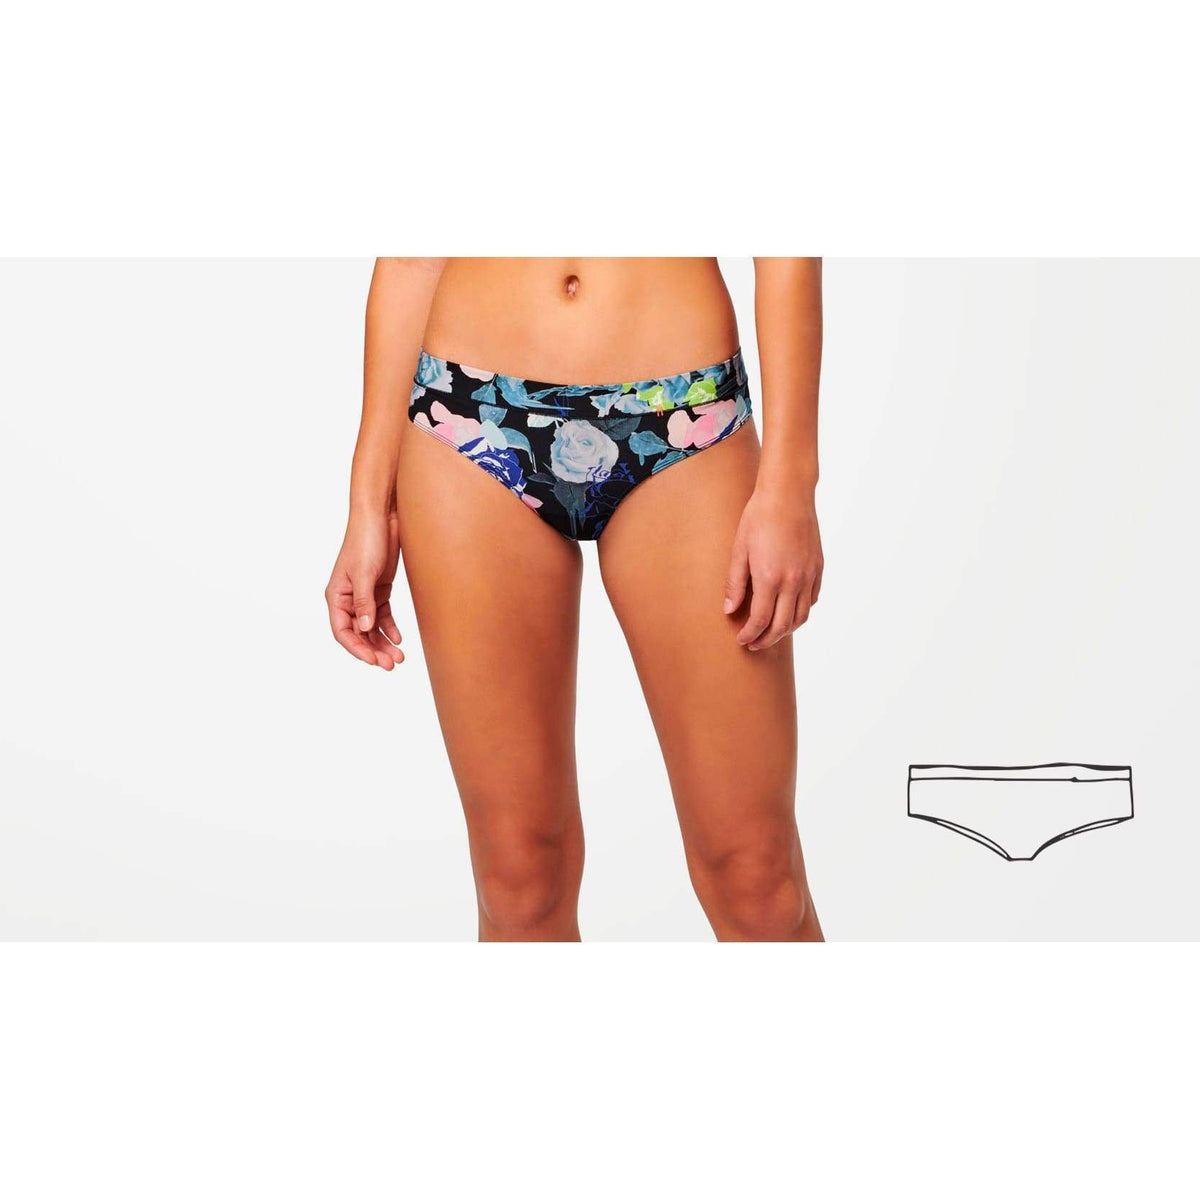 stance intimo,, image 1